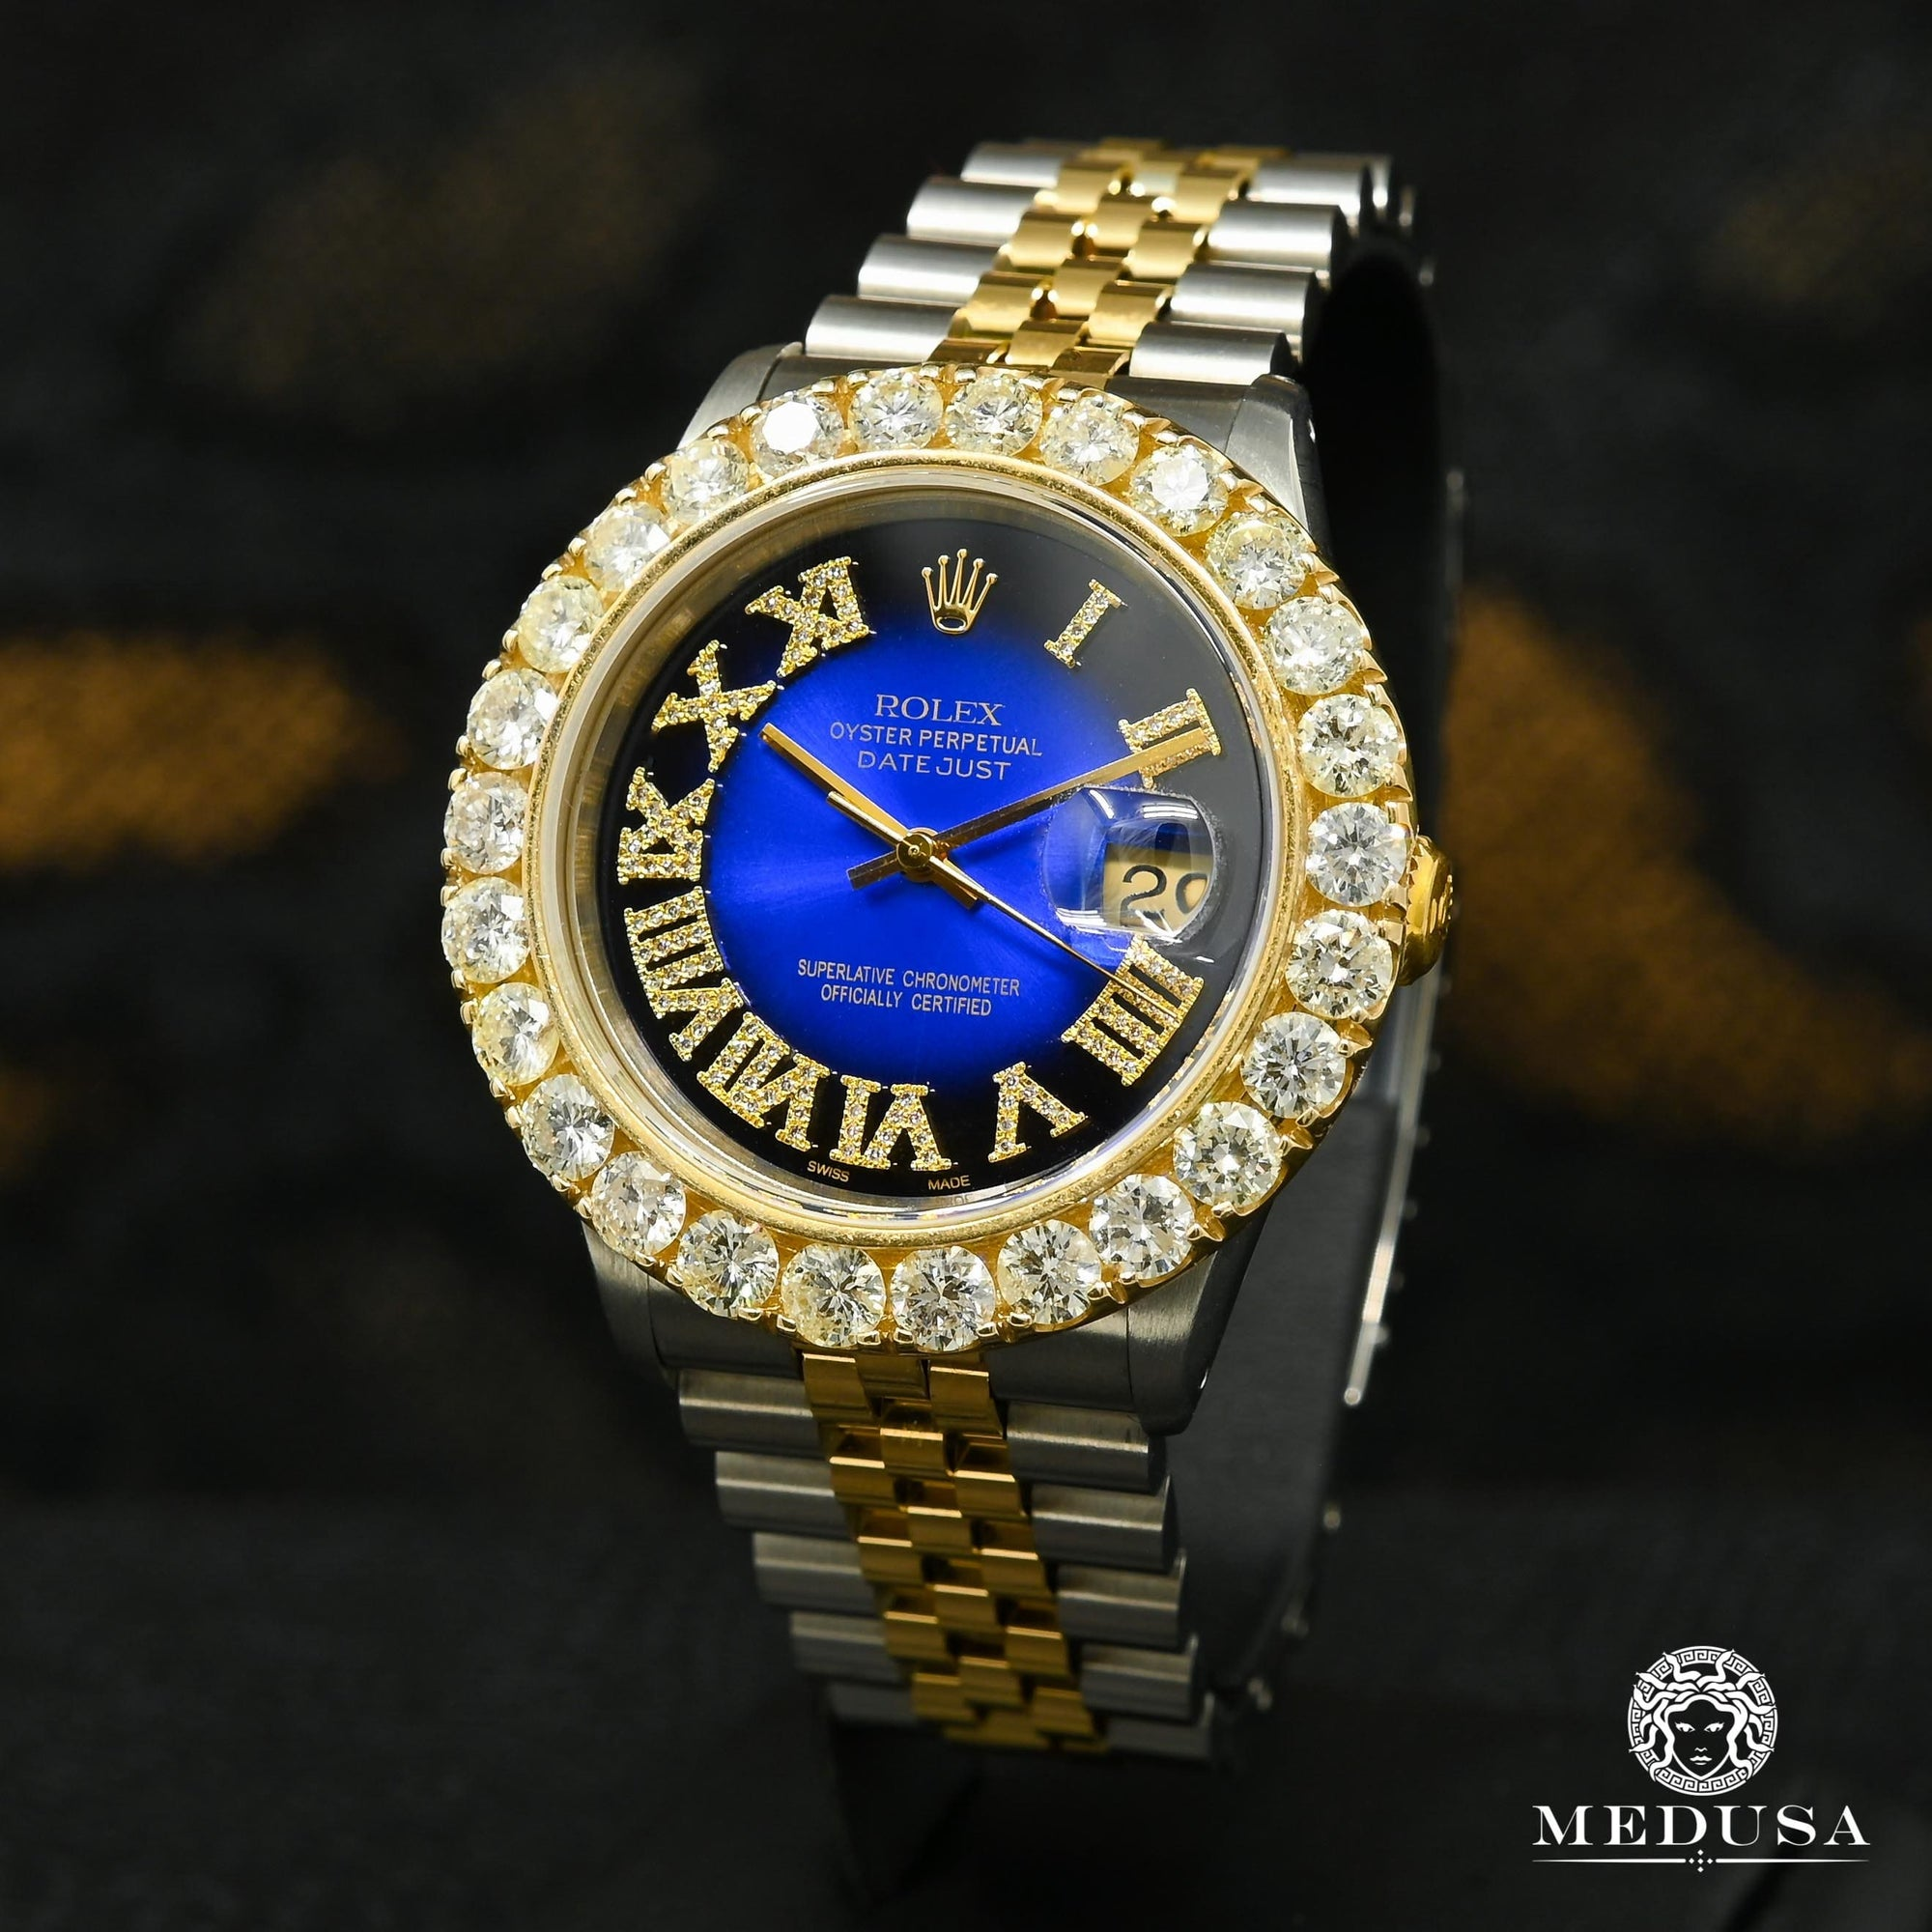 Rolex Datejust 36mm - Big Bezel Black/Blue